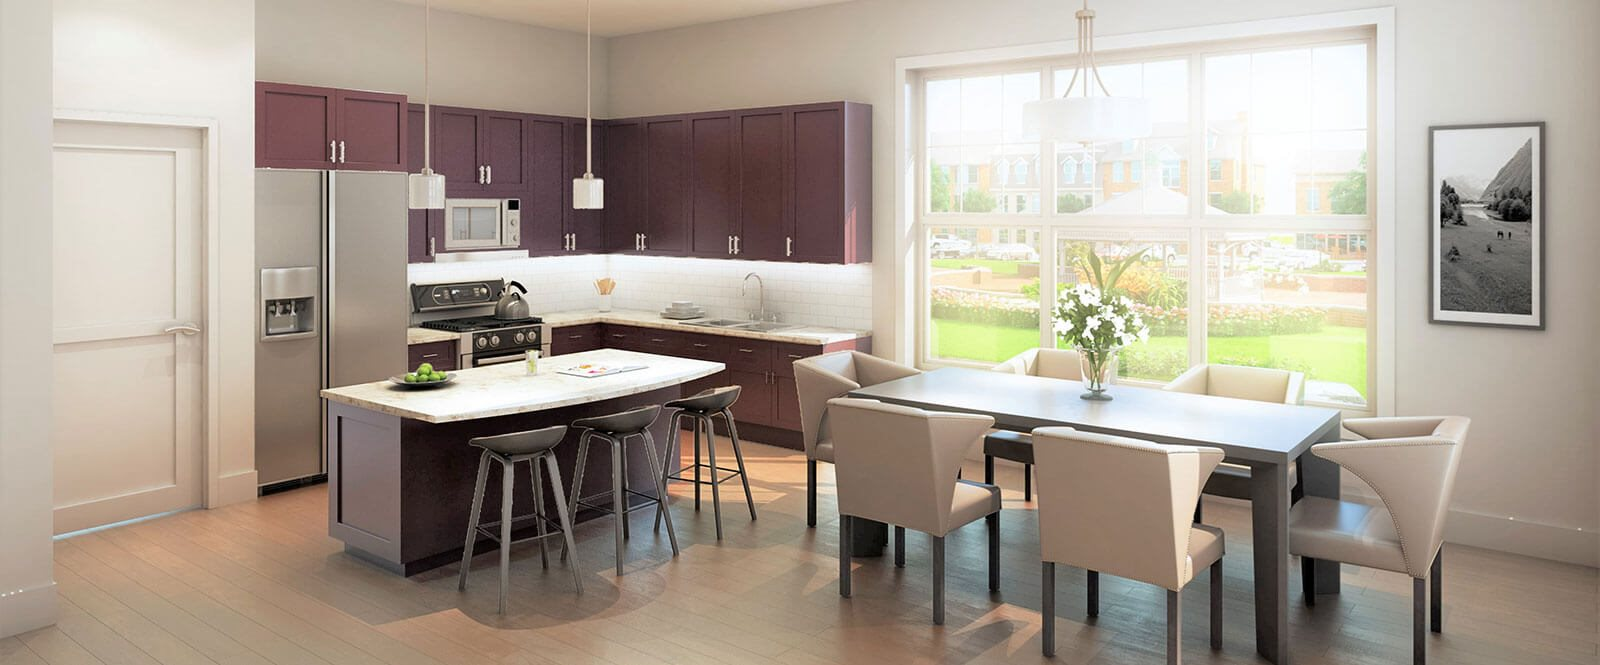 Kitchens include granite counter tops with stainless appliances